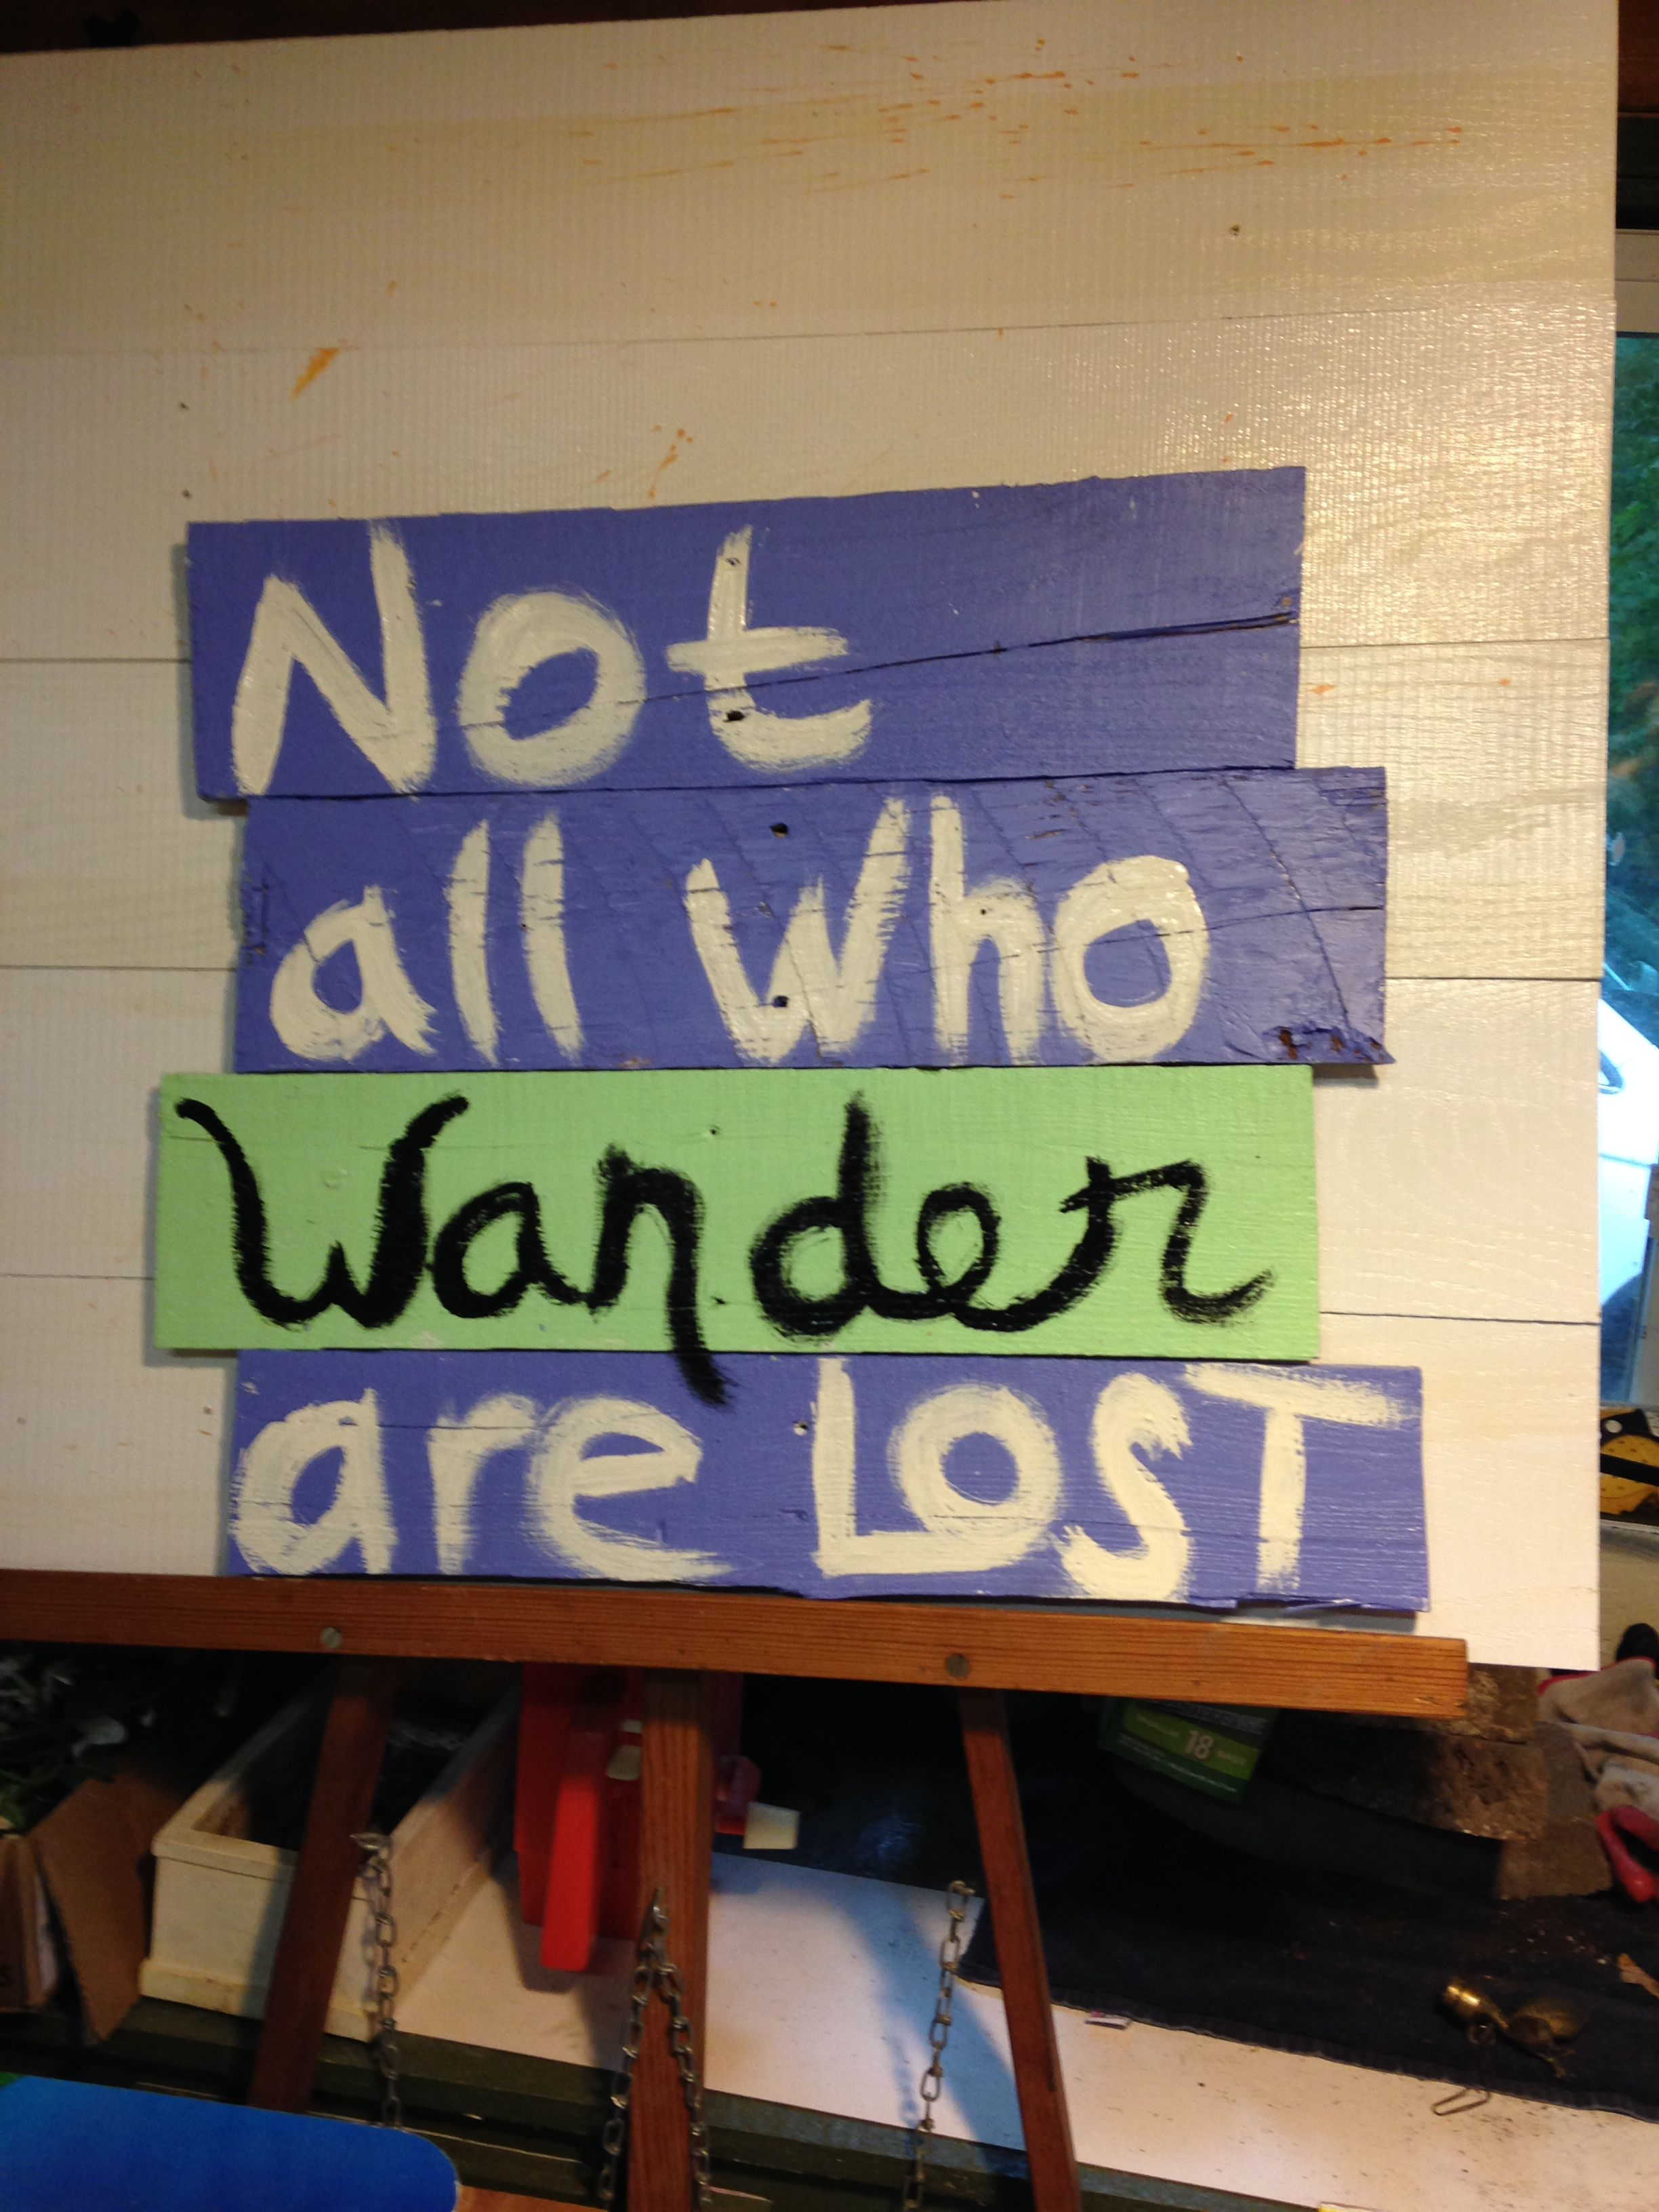 Pin by Abby Herrington on Quotes | Wood pallet signs, Wood ...